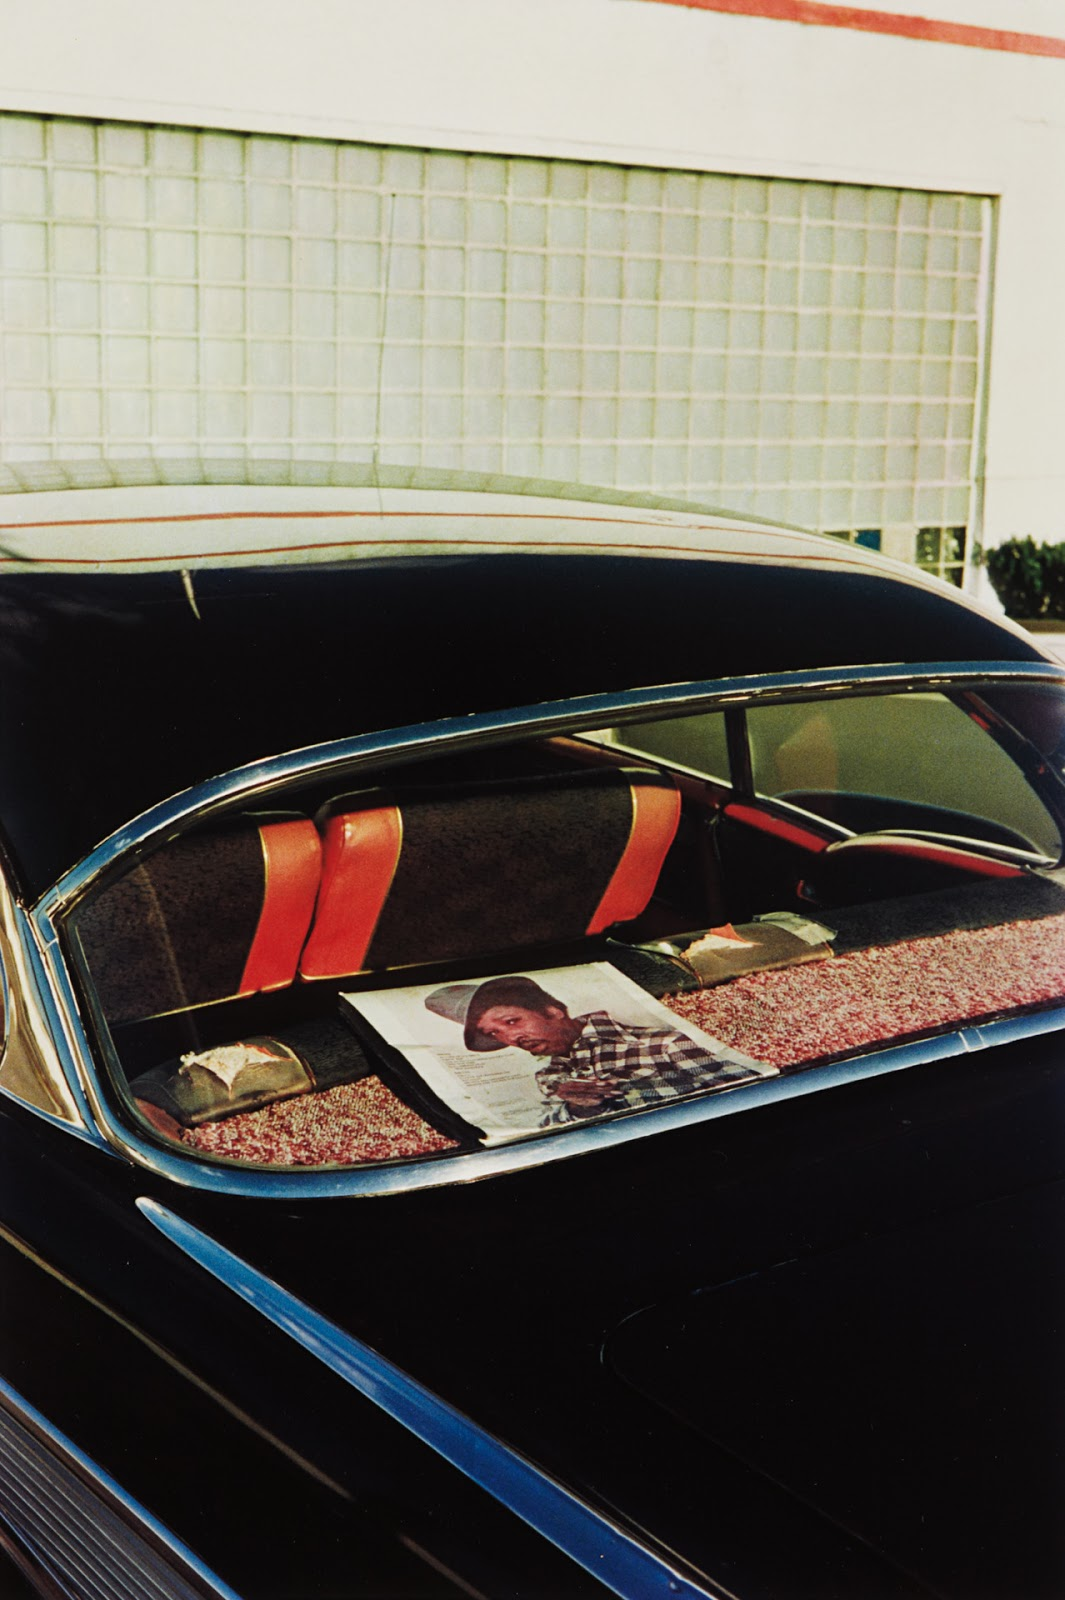 37 breathtaking color photographs of the american south taken by william eggleston in the late